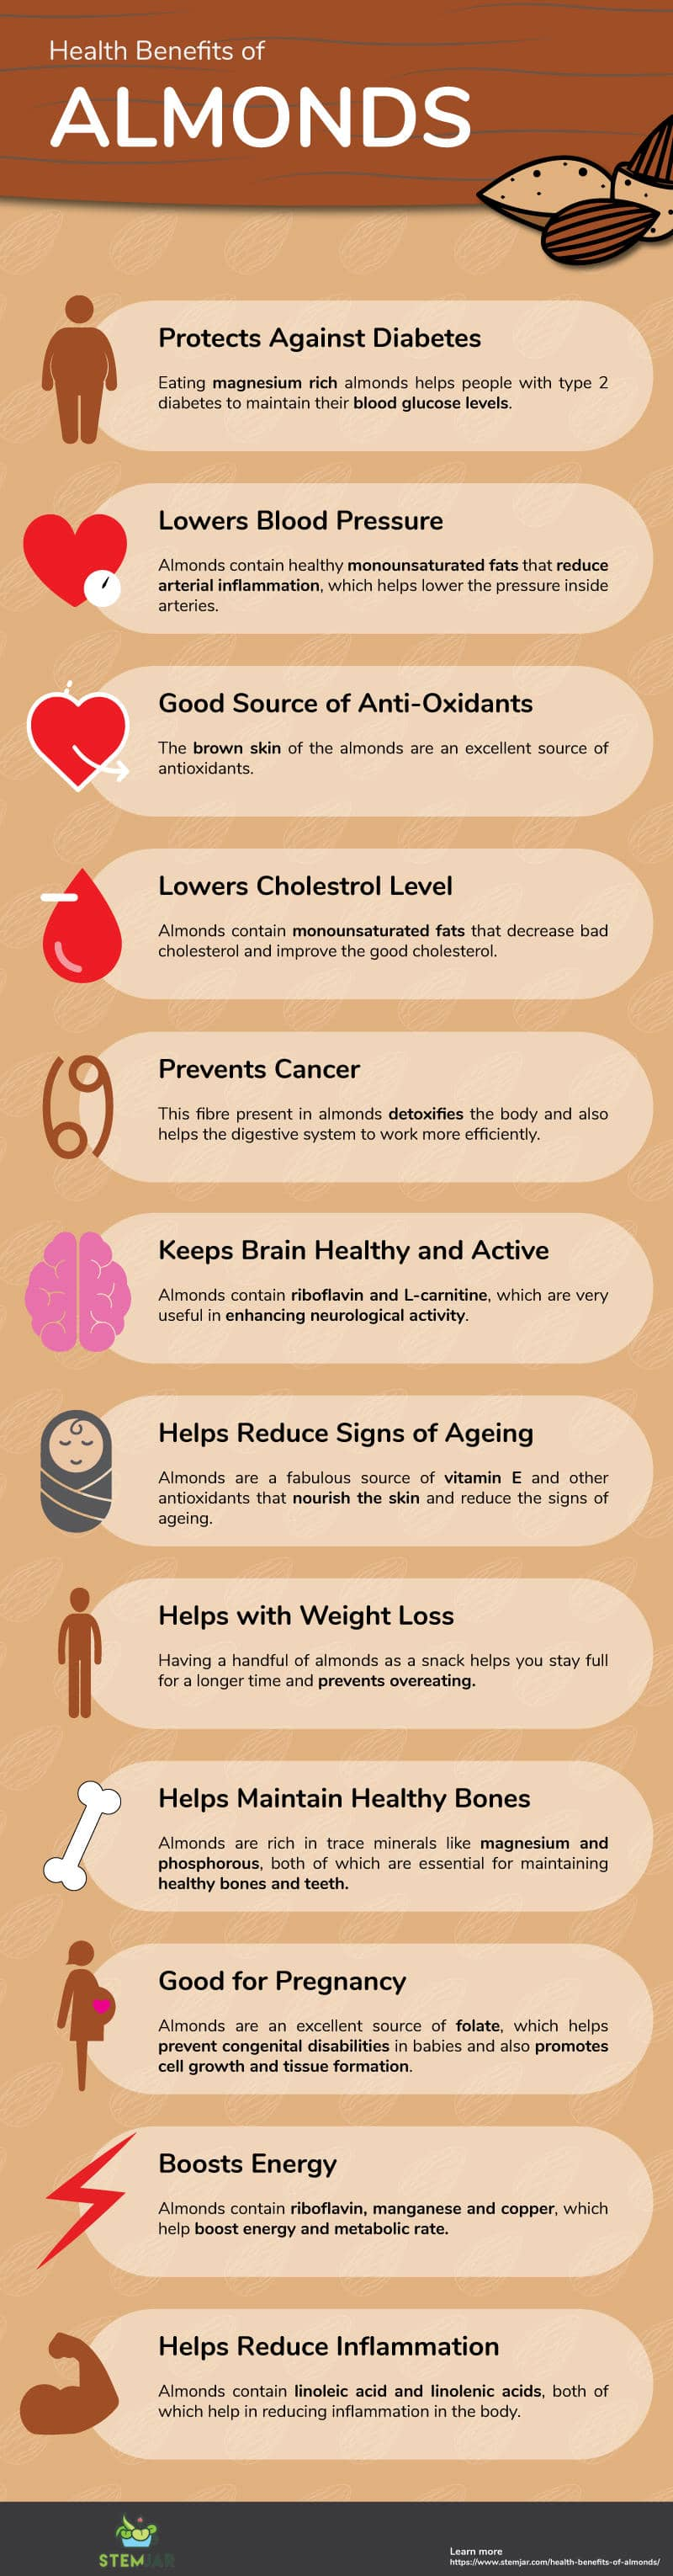 Health Benefits of Almonds info graphic